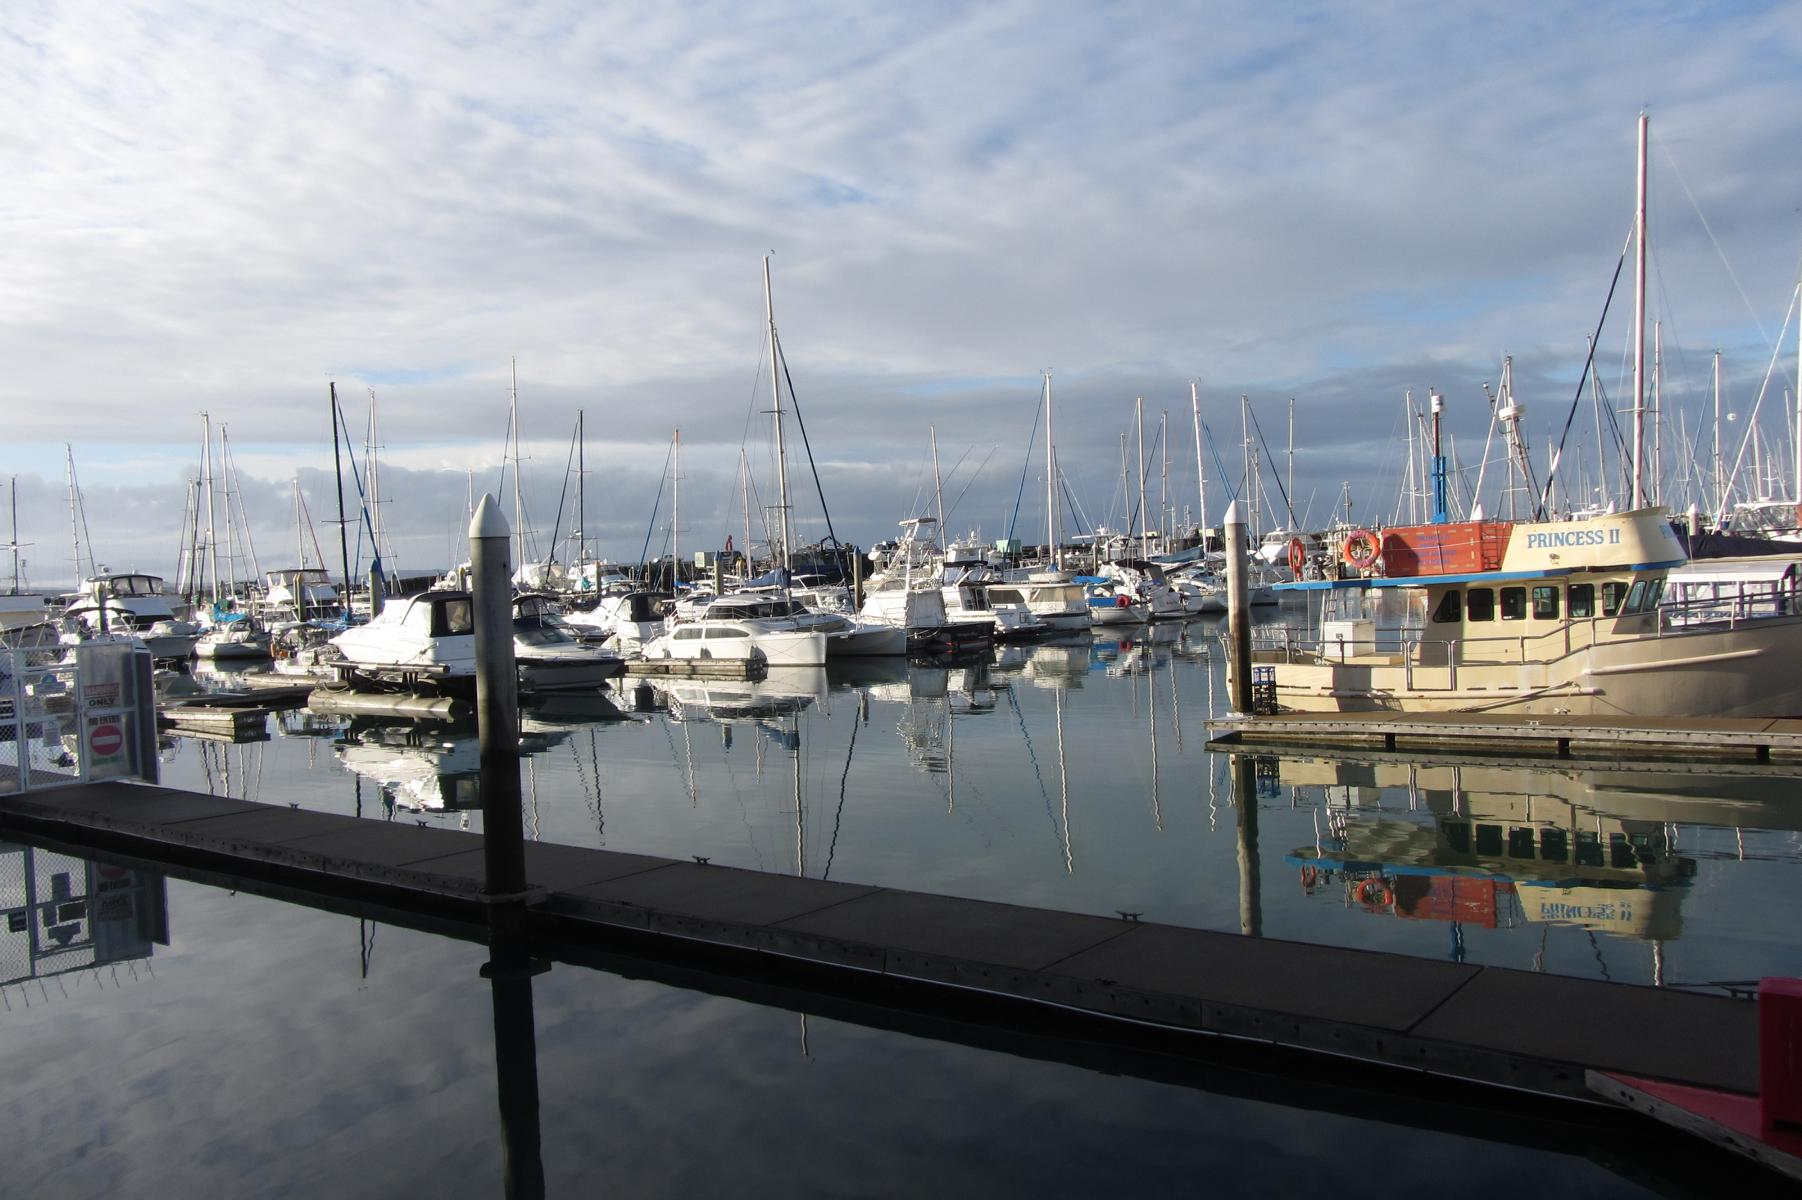 Morning at the harbour, checking in, Hervey Bay Whale Watching, Queensland, Australia